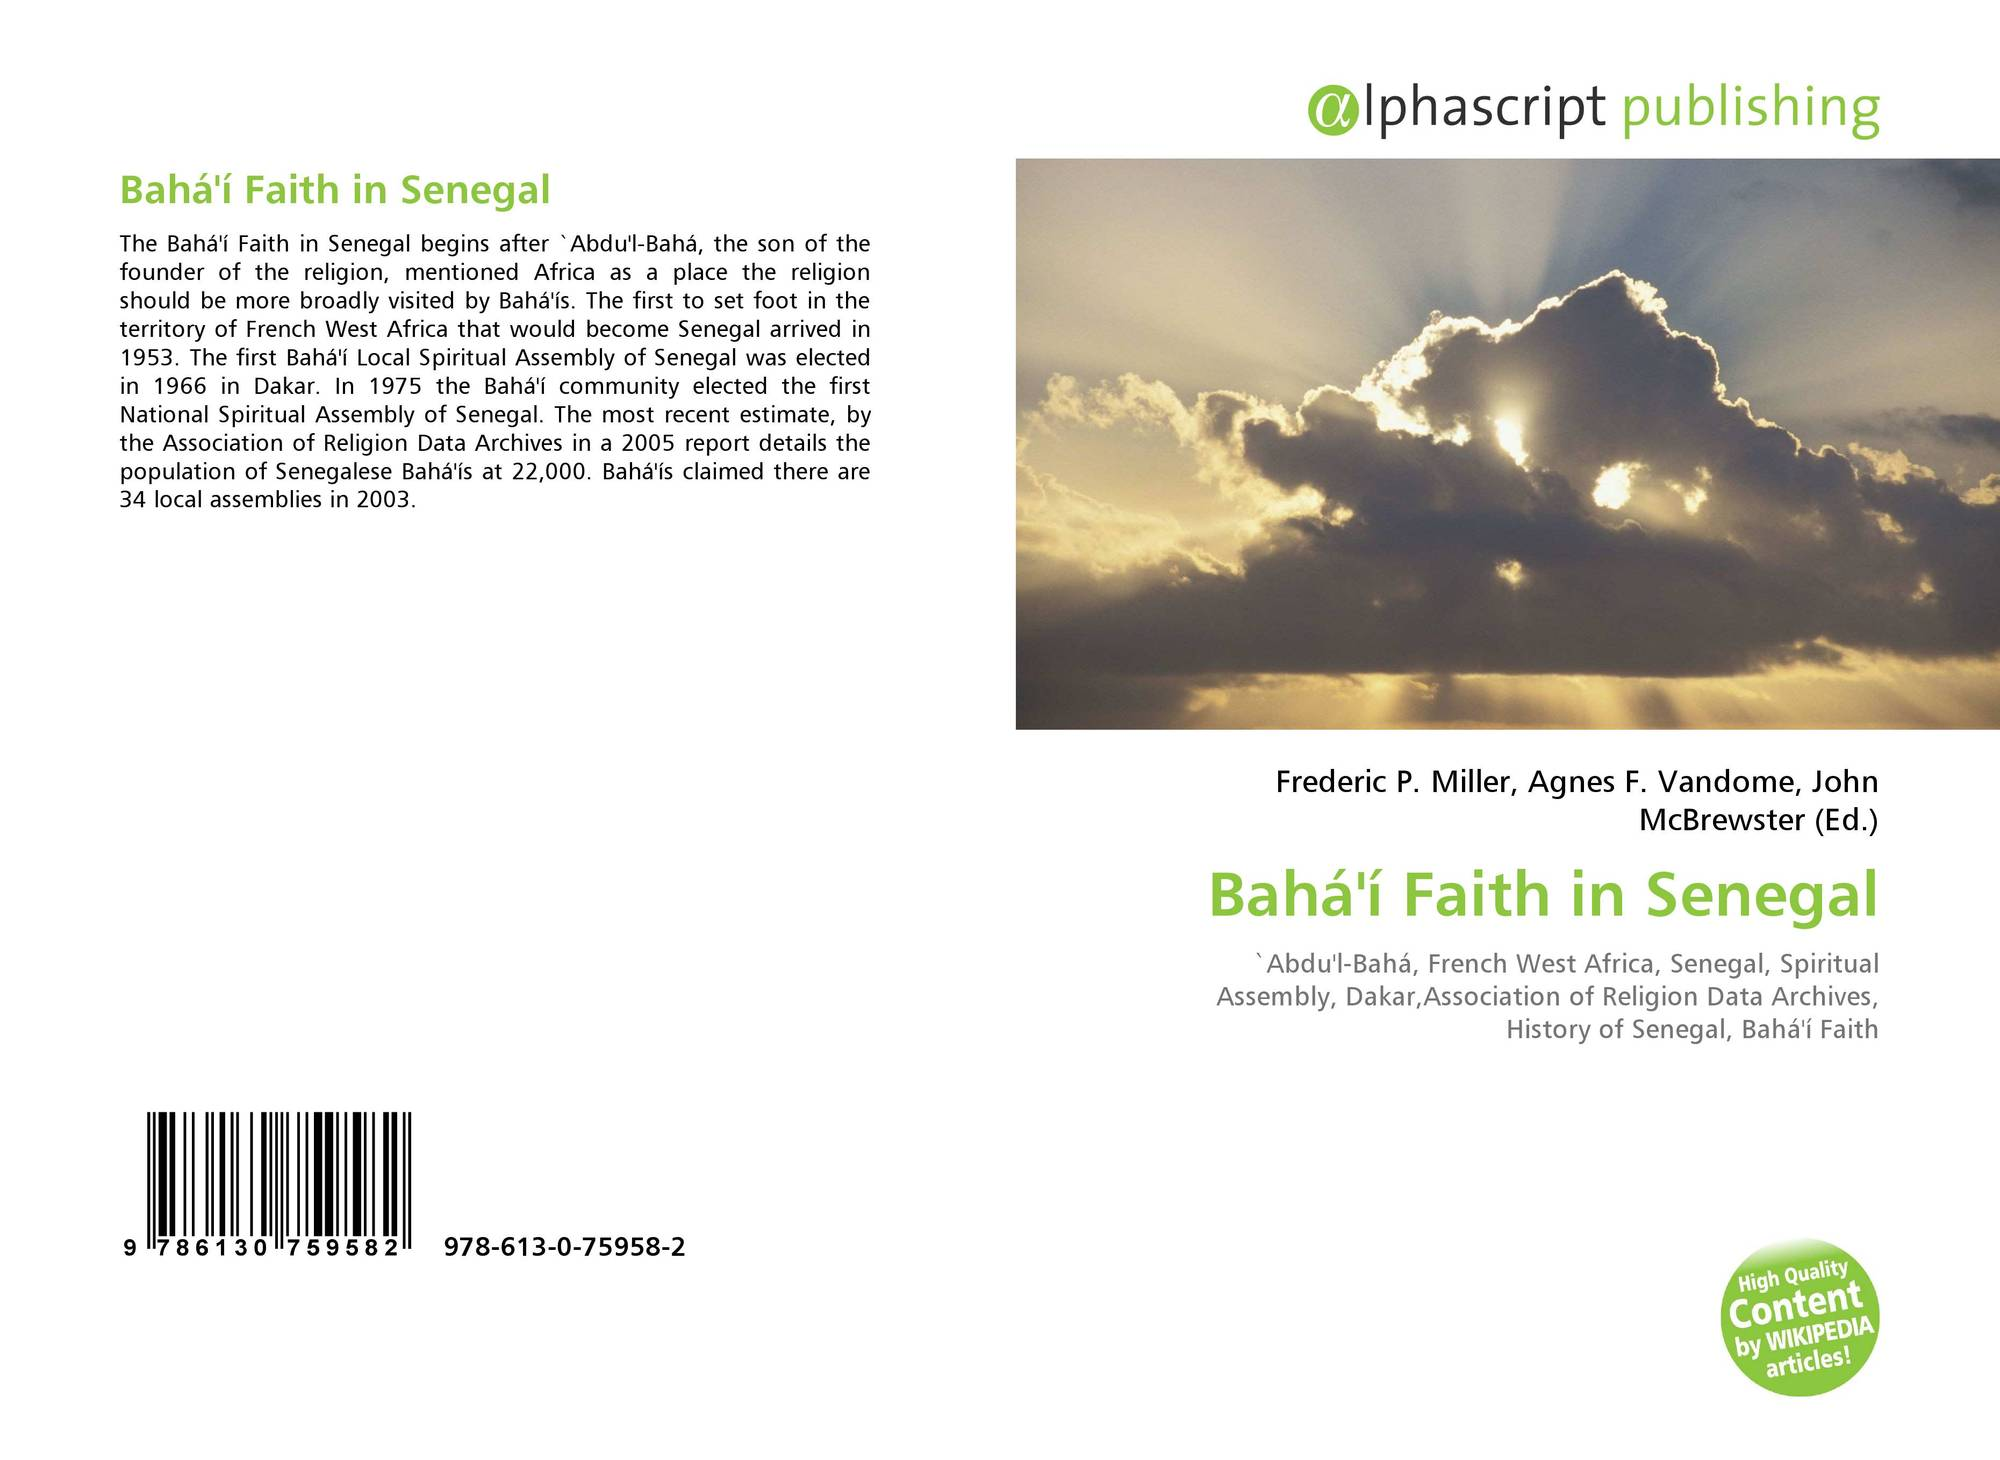 Bahá'í Faith in Senegal, 978-613-0-75958-2, 6130759584 ,9786130759582